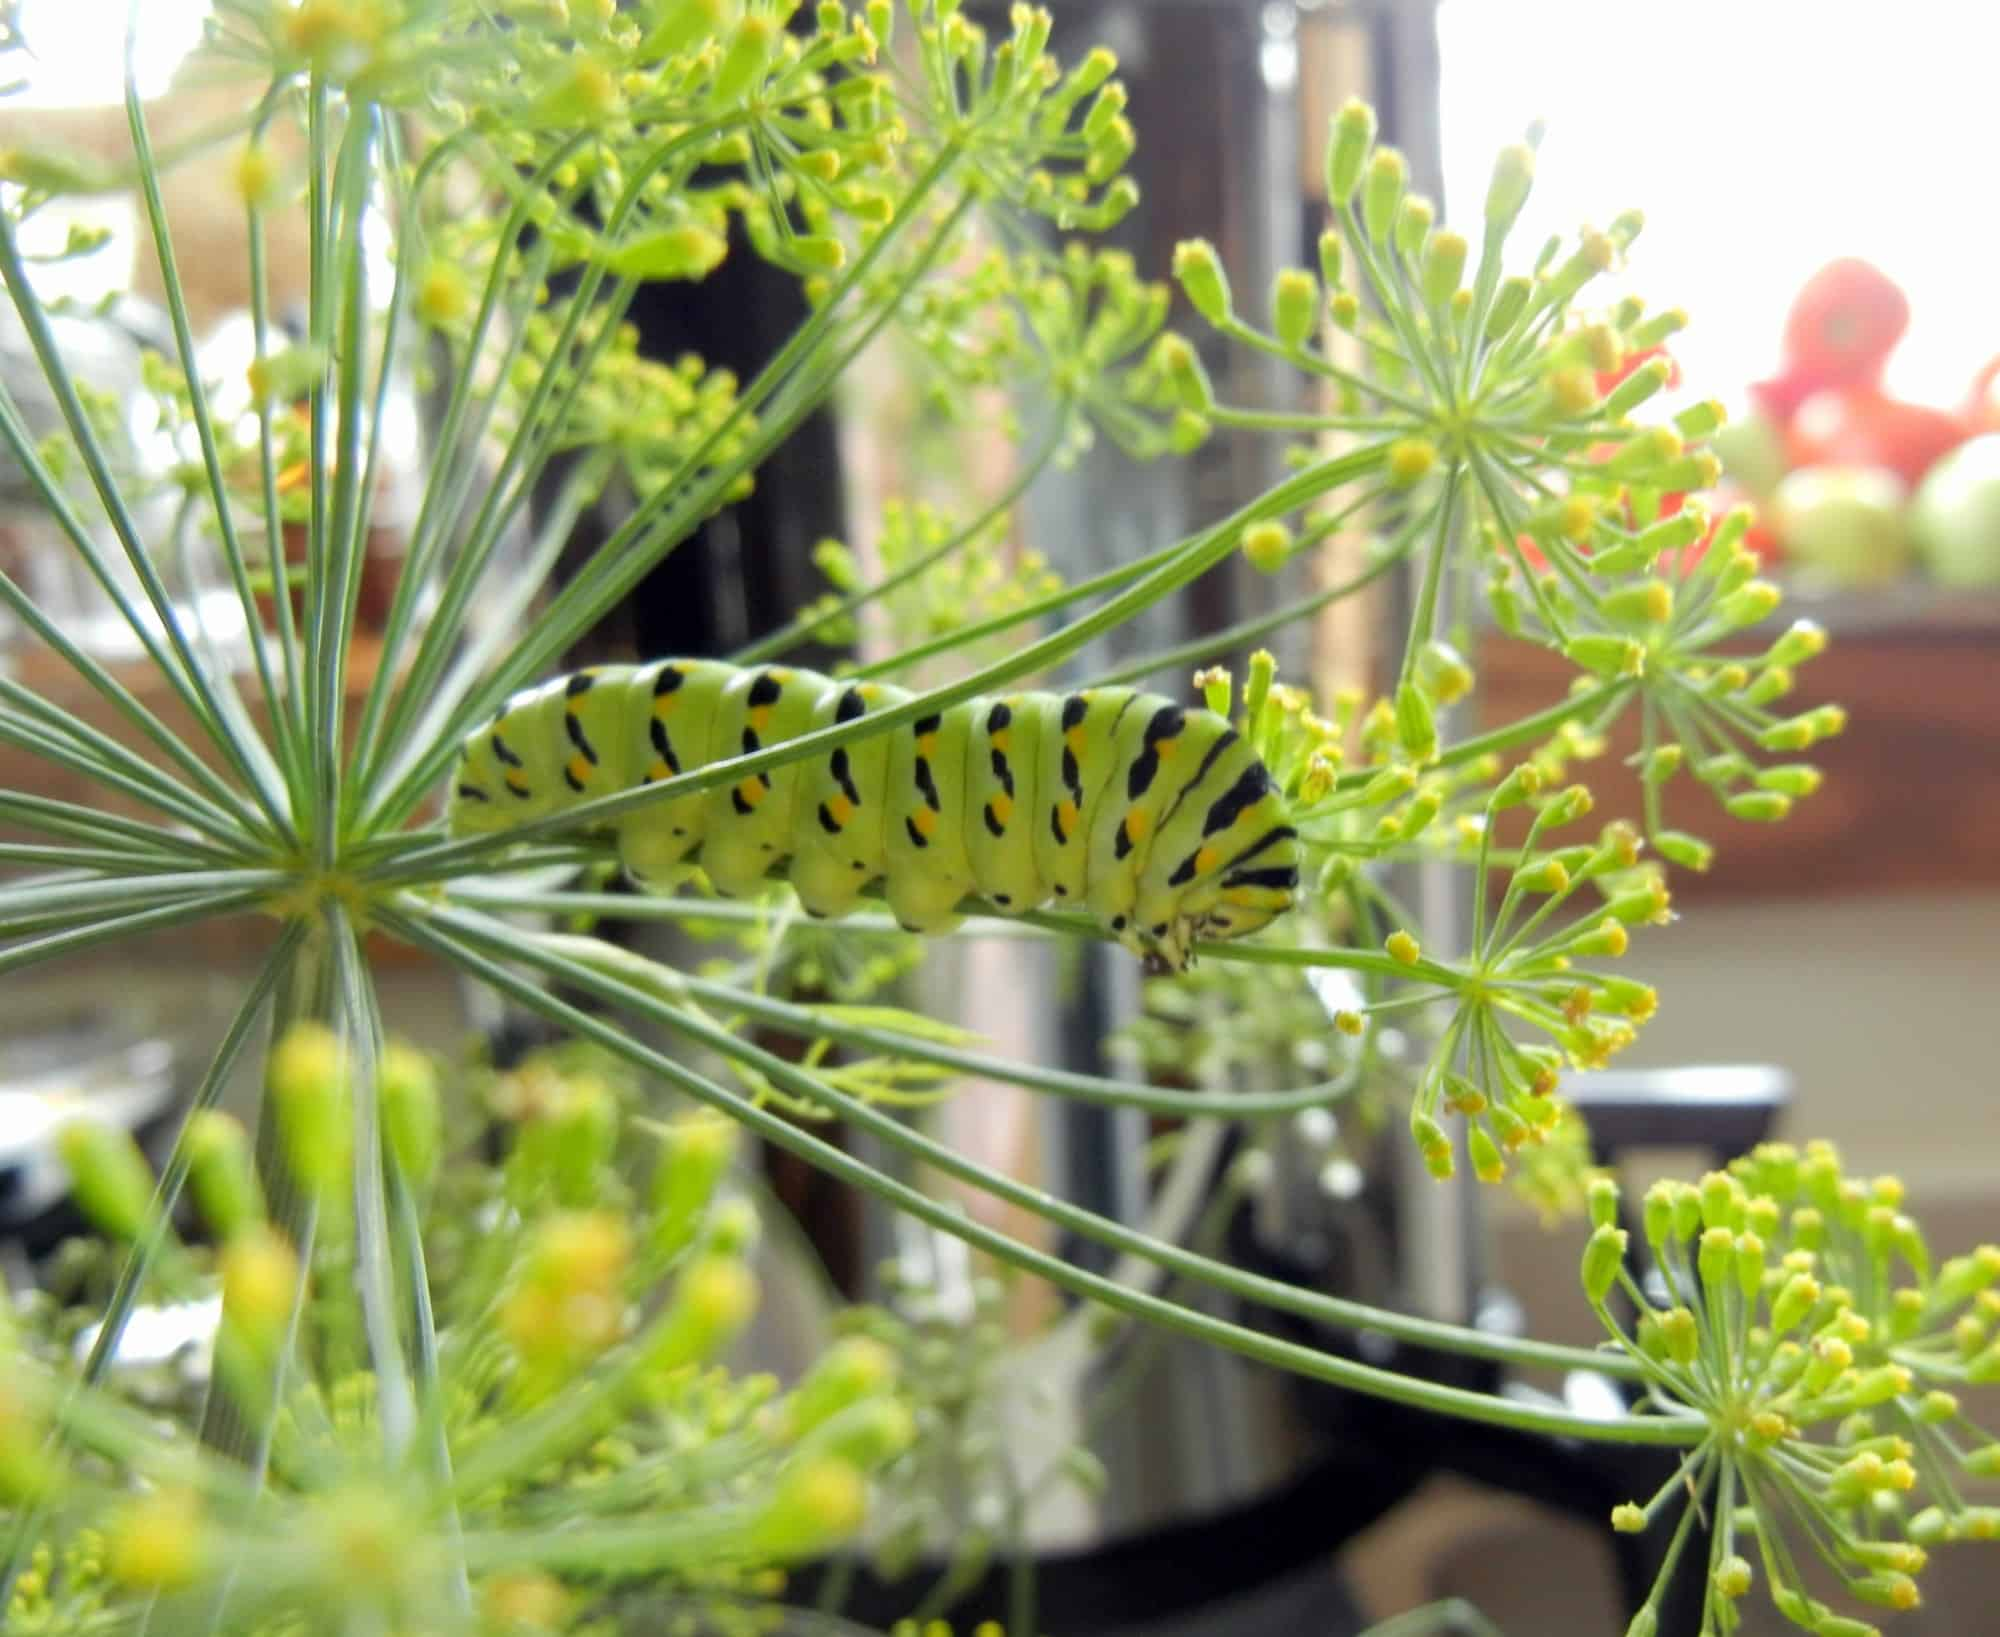 SLR camera on tripod, photographing caterpillar, eating fresh herb